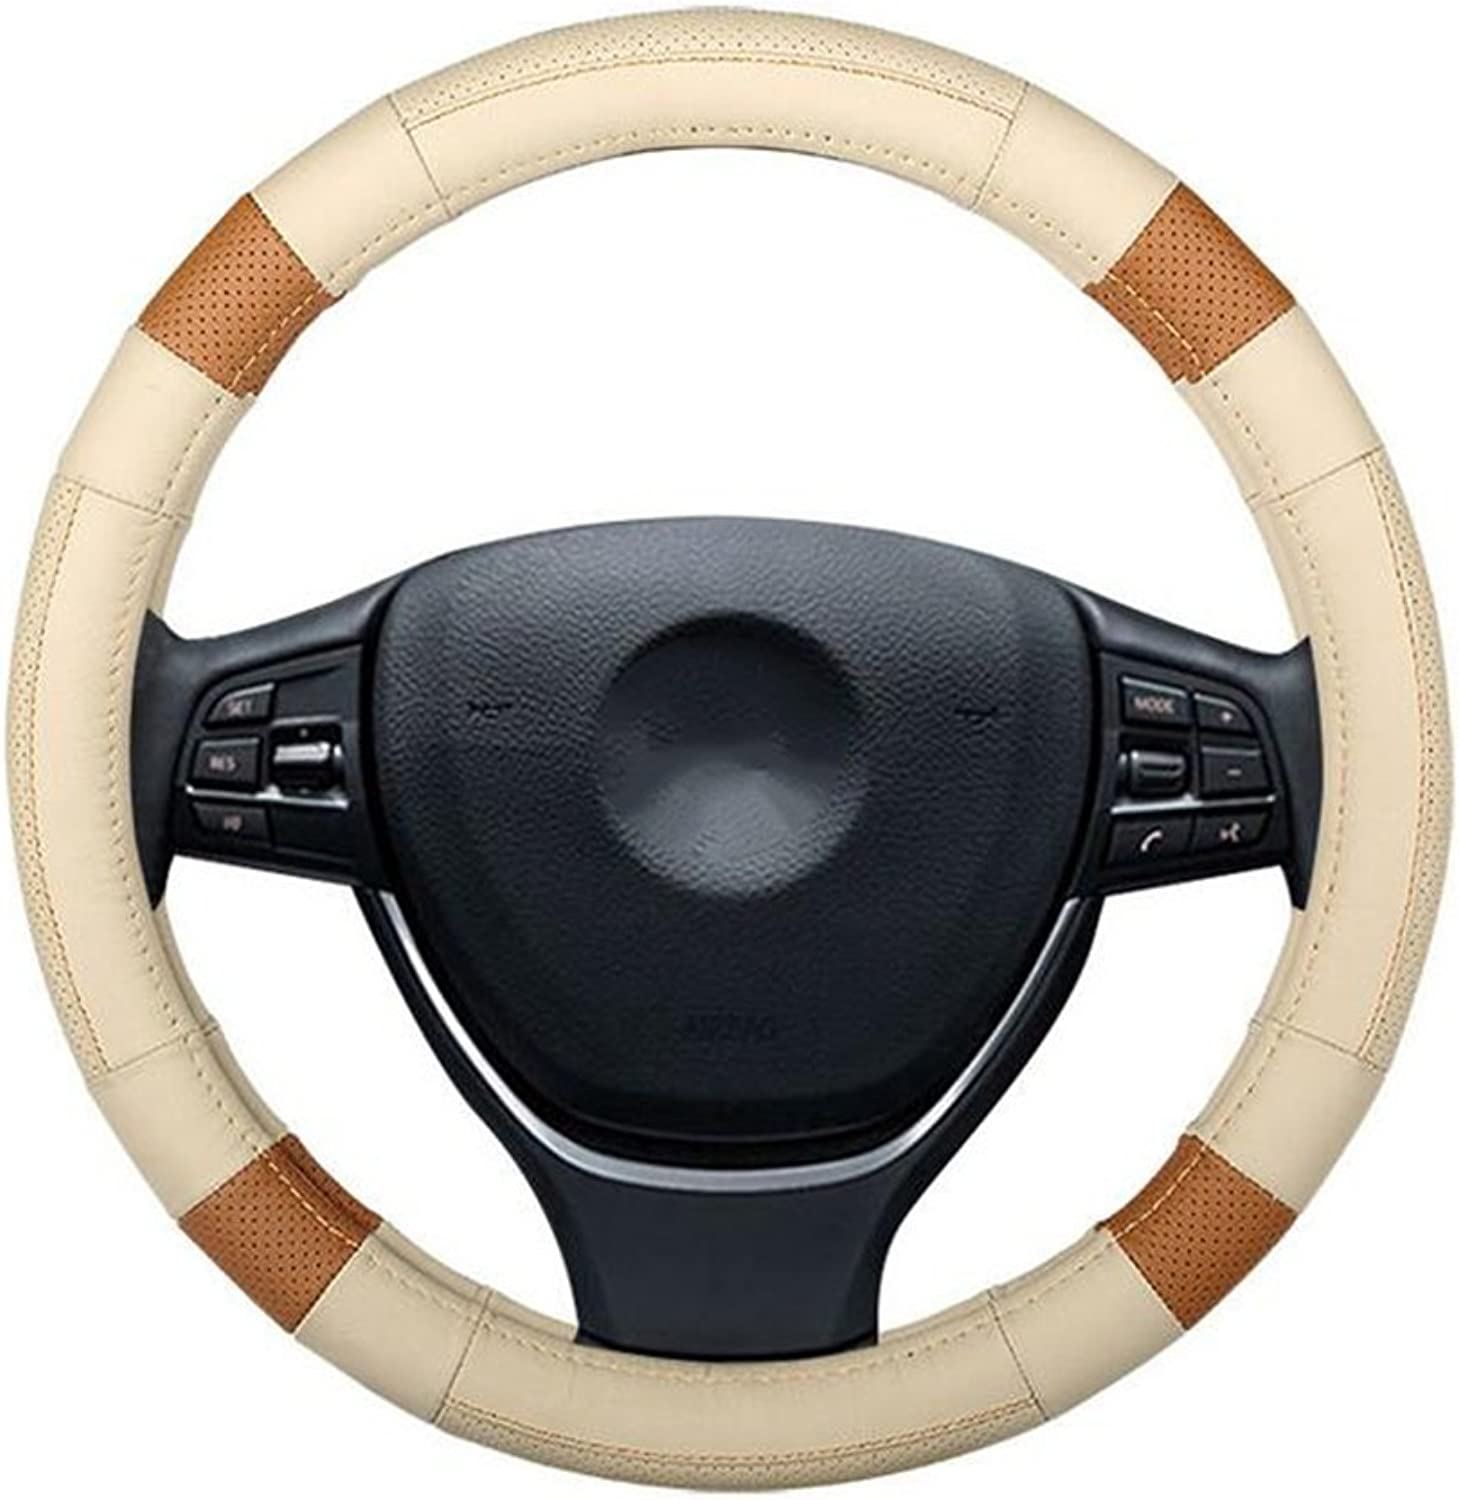 Auto Accessories Car Steering Wheel Cover Breathable NonSlip Leather Enhancing Driving Quality 38cm Universal Handle Cover, Beige, 40CM